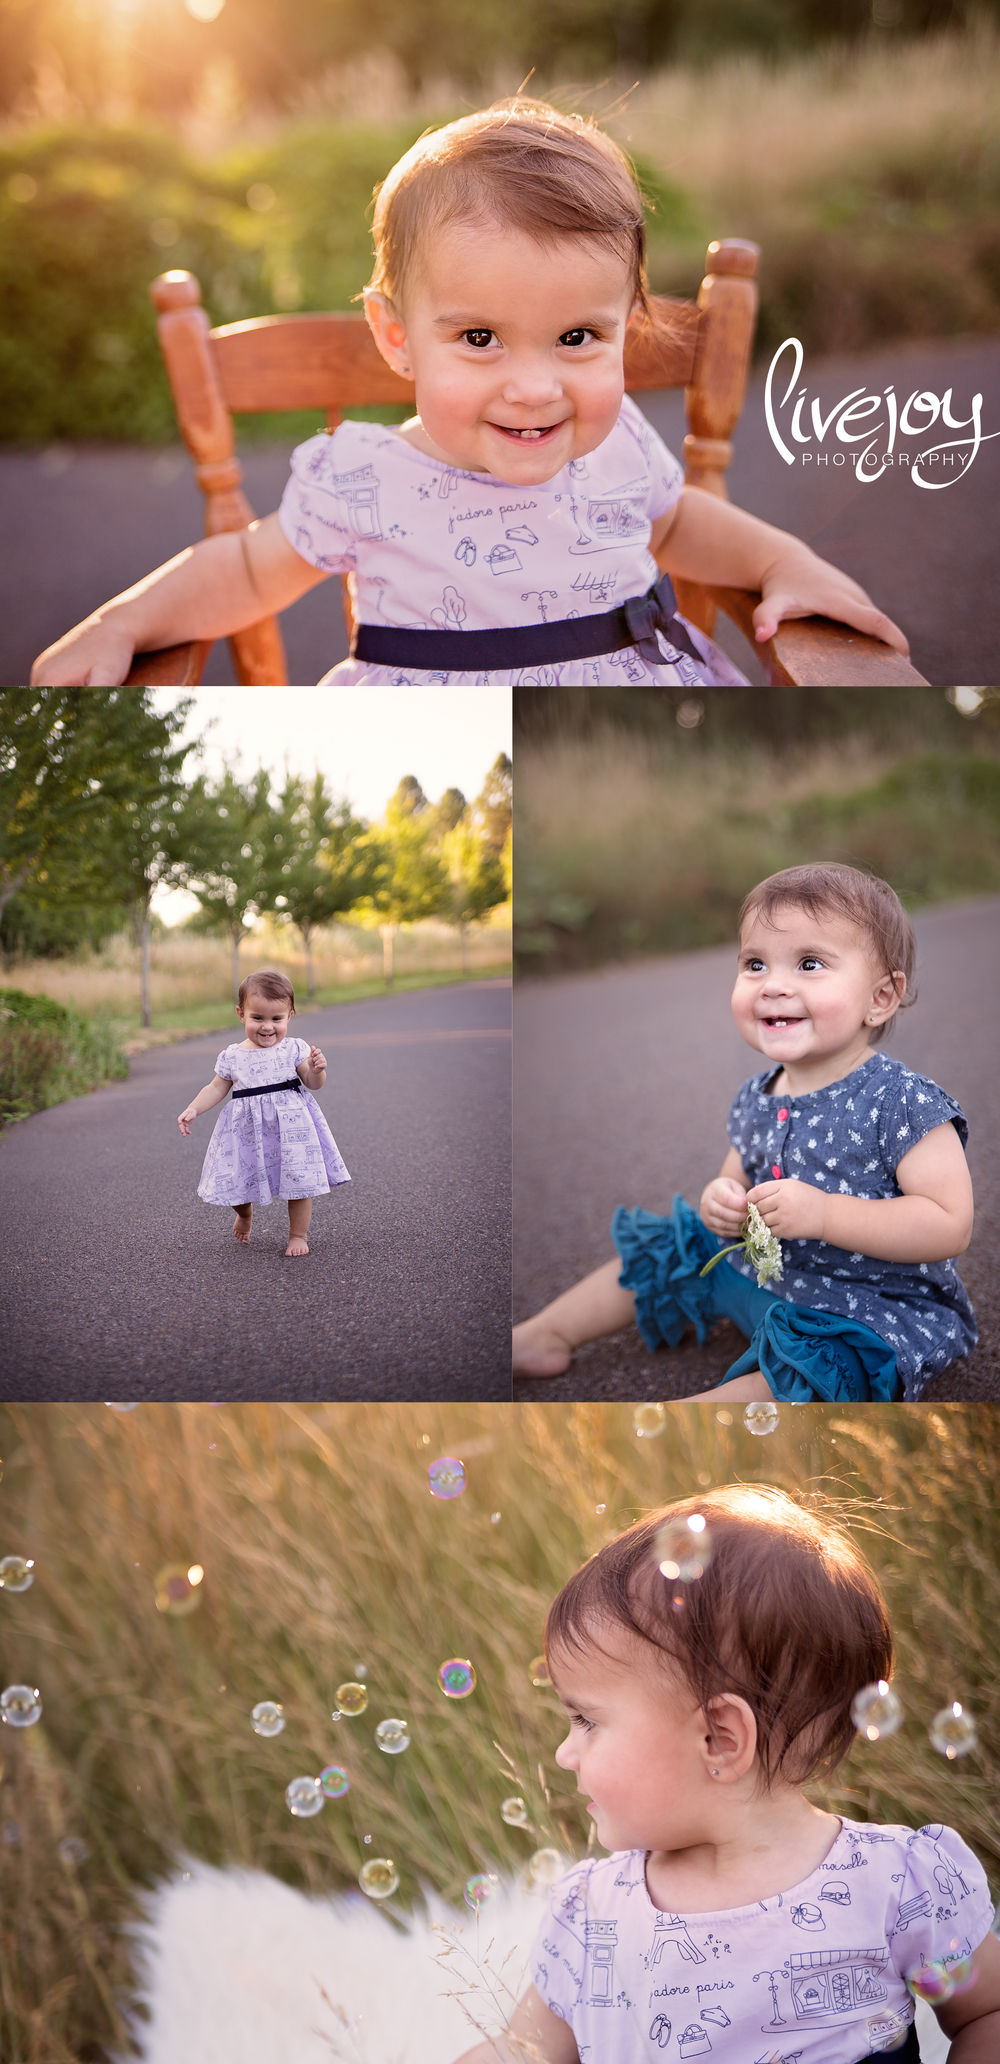 1 Year Baby Girl Photography | Oregon | LiveJoy Photography